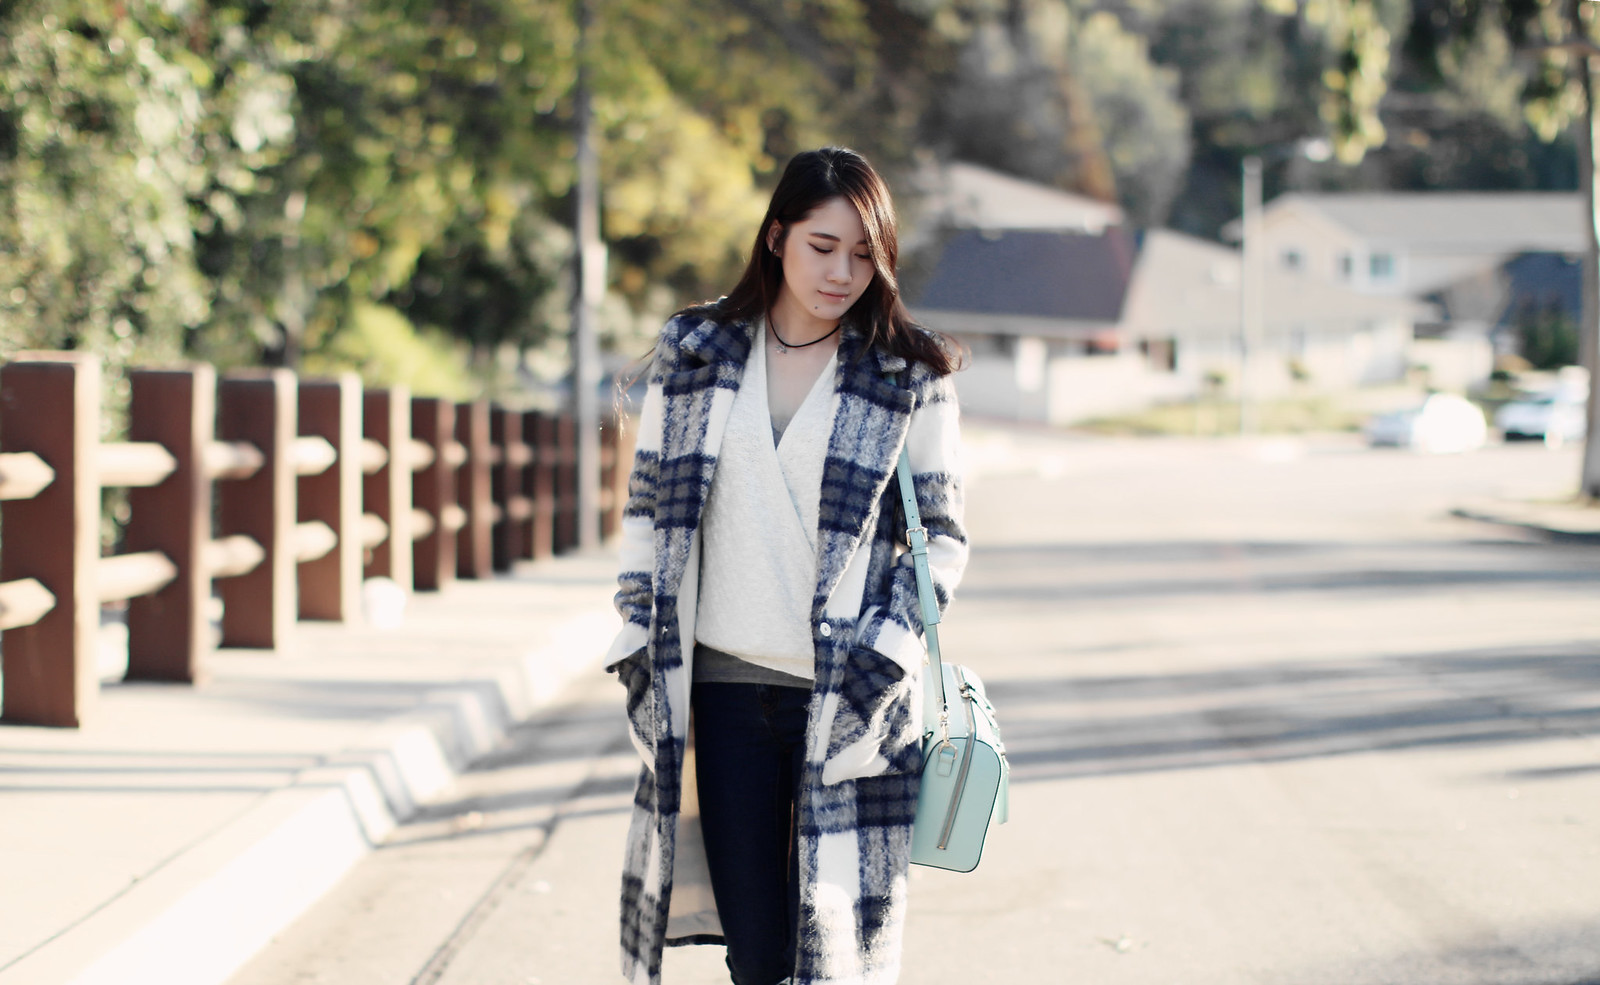 1481-ootd-fashion-blue-navy-forever21-coat-winterfashion-koreanfashion-ulzzangfashion-longlinecoat-clothestoyouuu-elizabeeetht